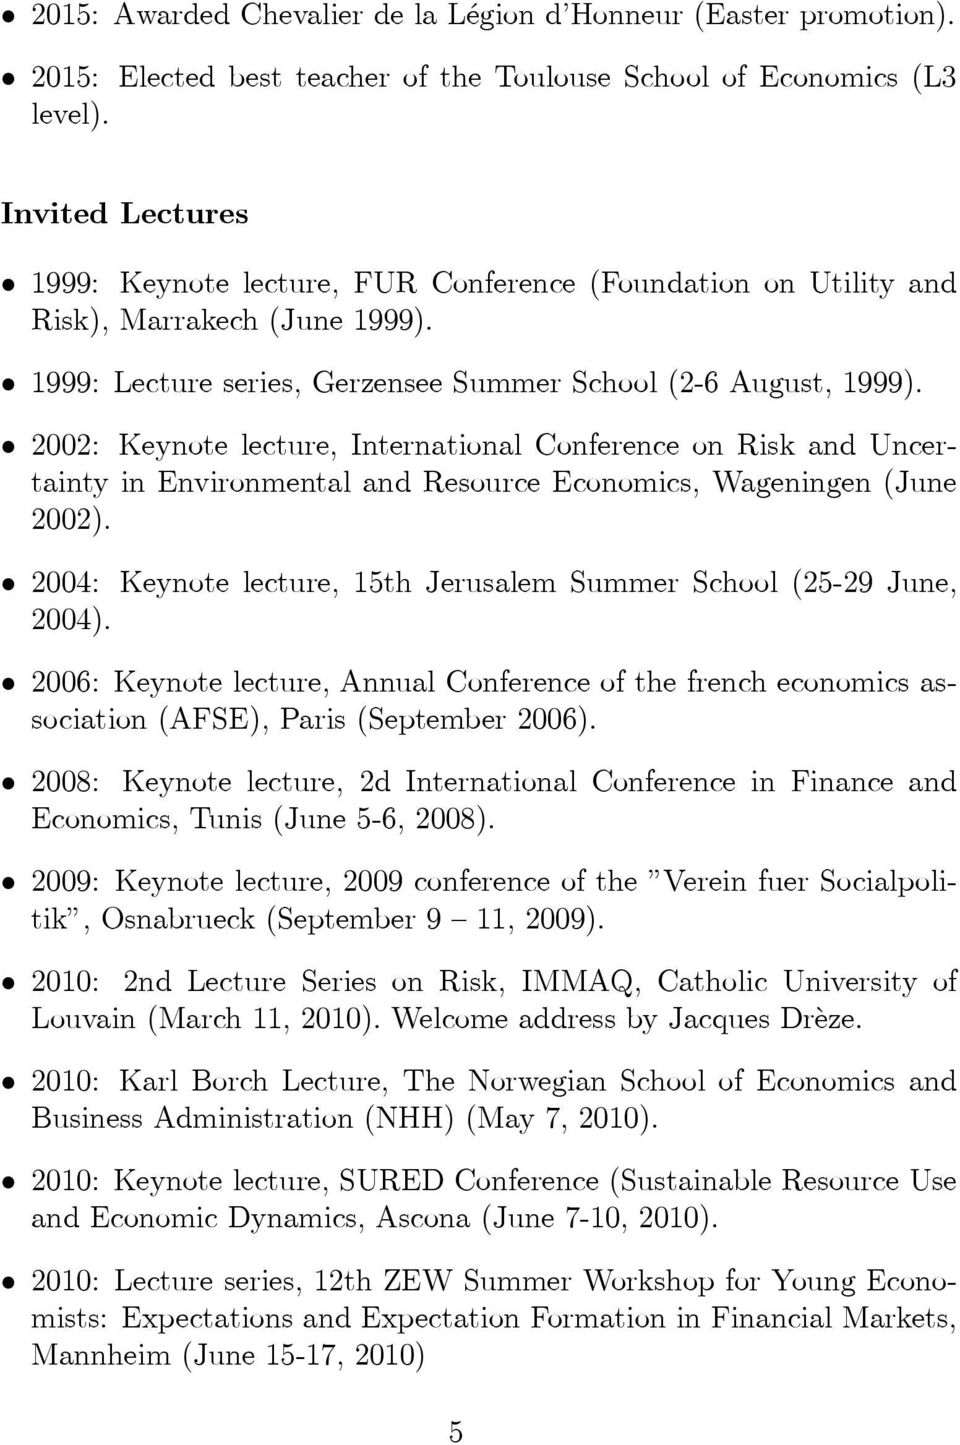 2002: Keynote lecture, International Conference on Risk and Uncertainty in Environmental and Resource Economics, Wageningen (June 2002).